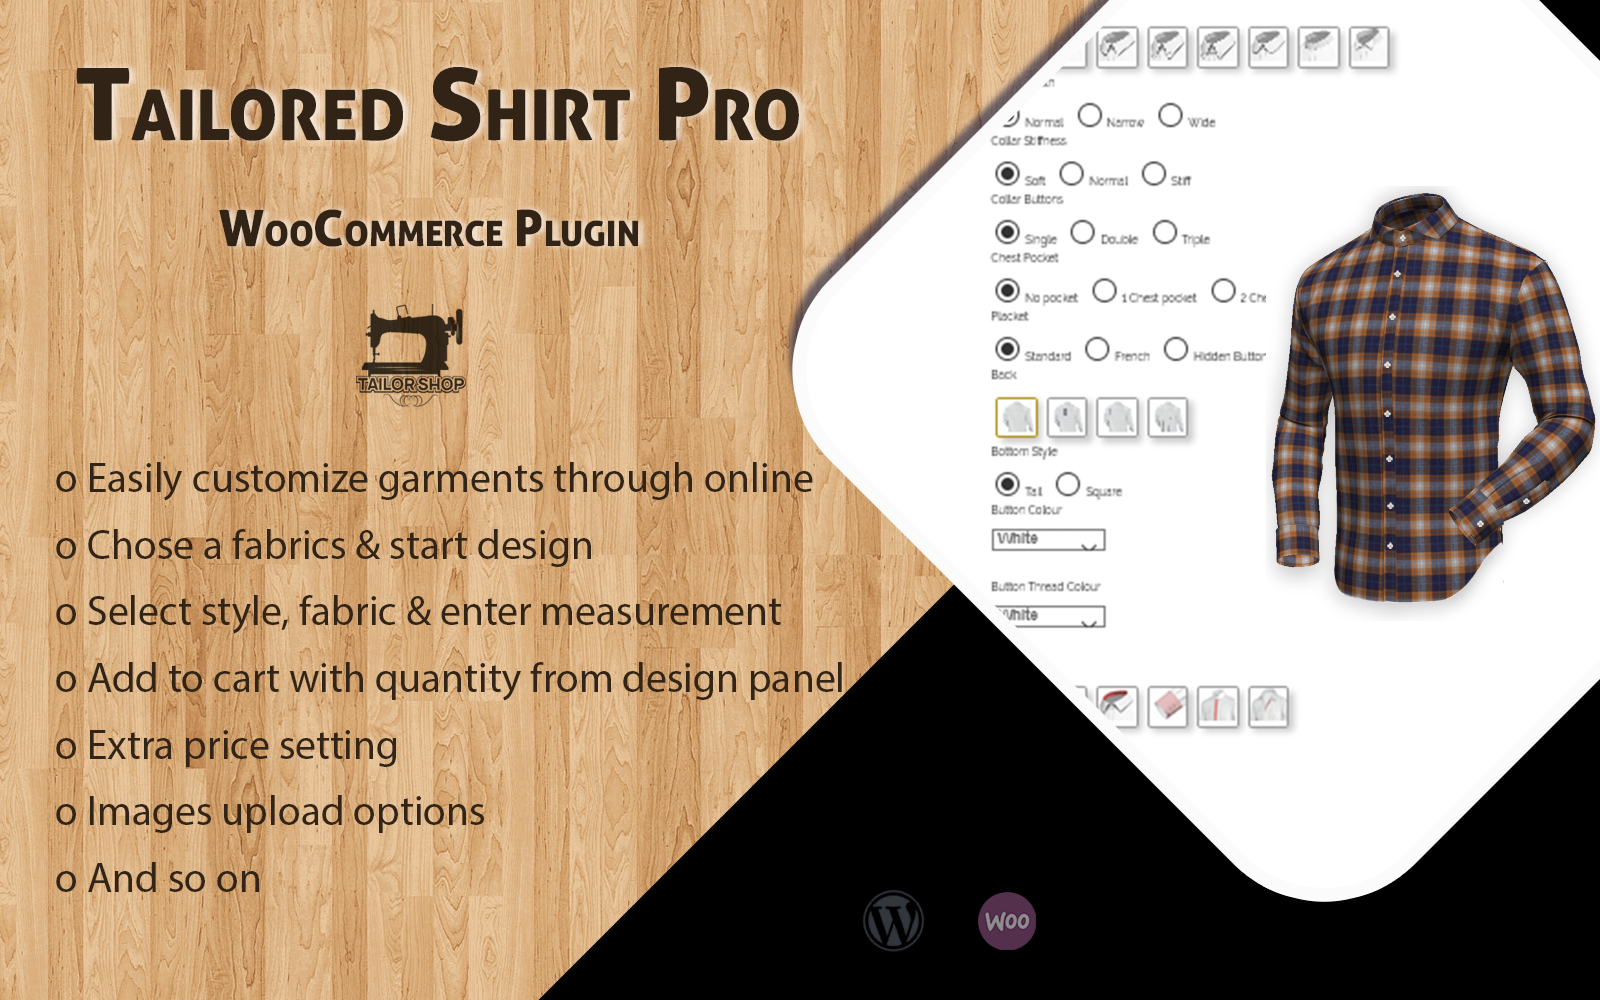 WooCommerce Tailored Shirt Online Pro - WordPress-plug-in